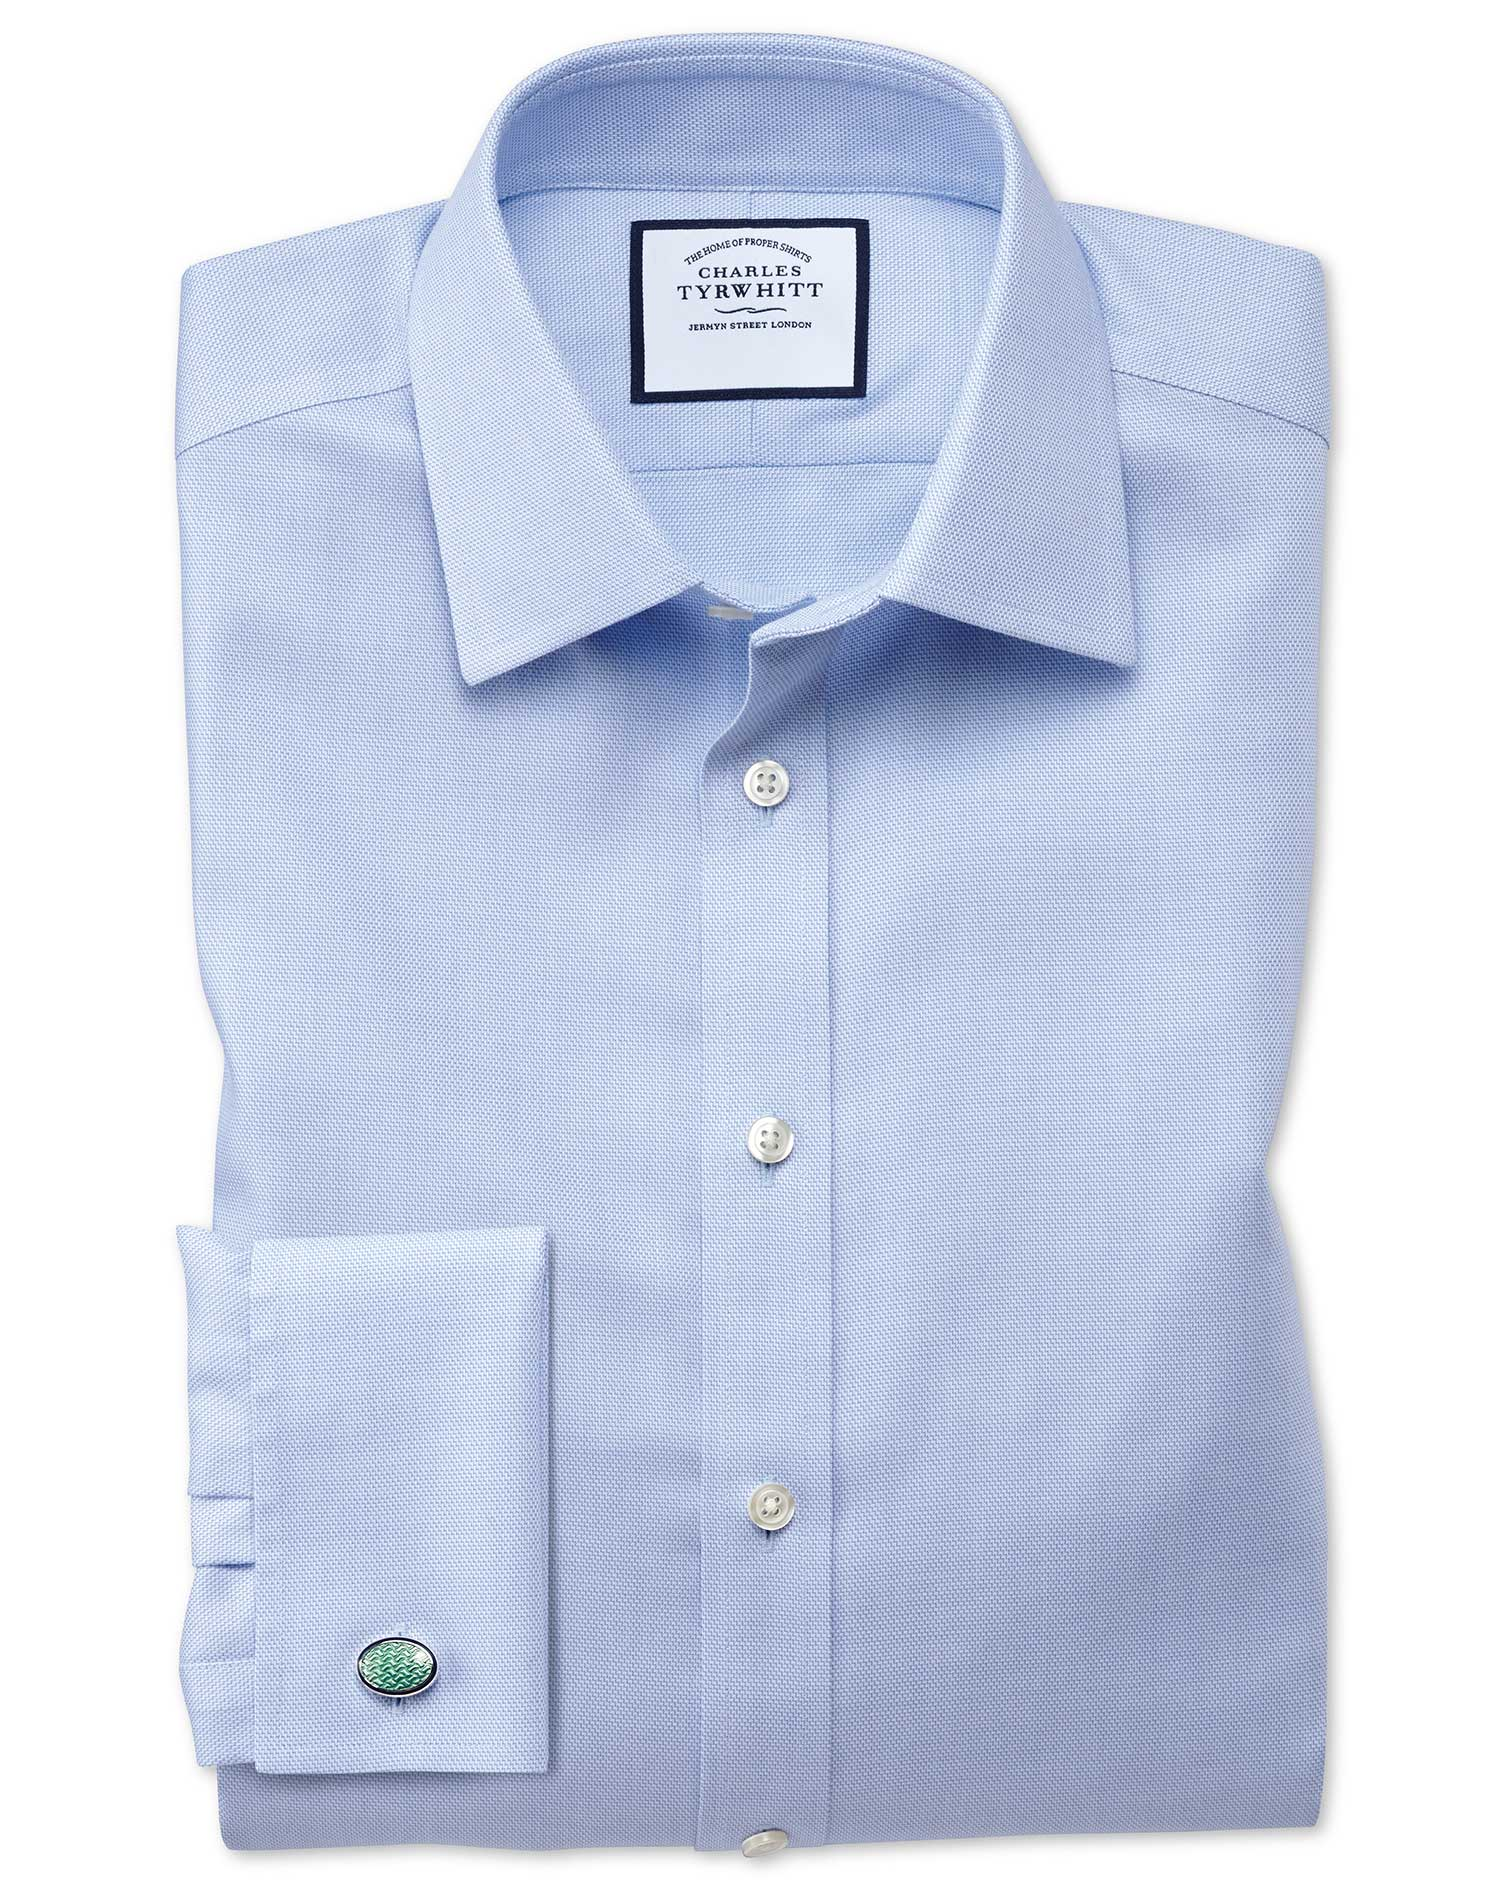 Classic Fit Non-Iron Step Weave Sky Blue Cotton Formal Shirt Single Cuff Size 17/34 by Charles Tyrwh